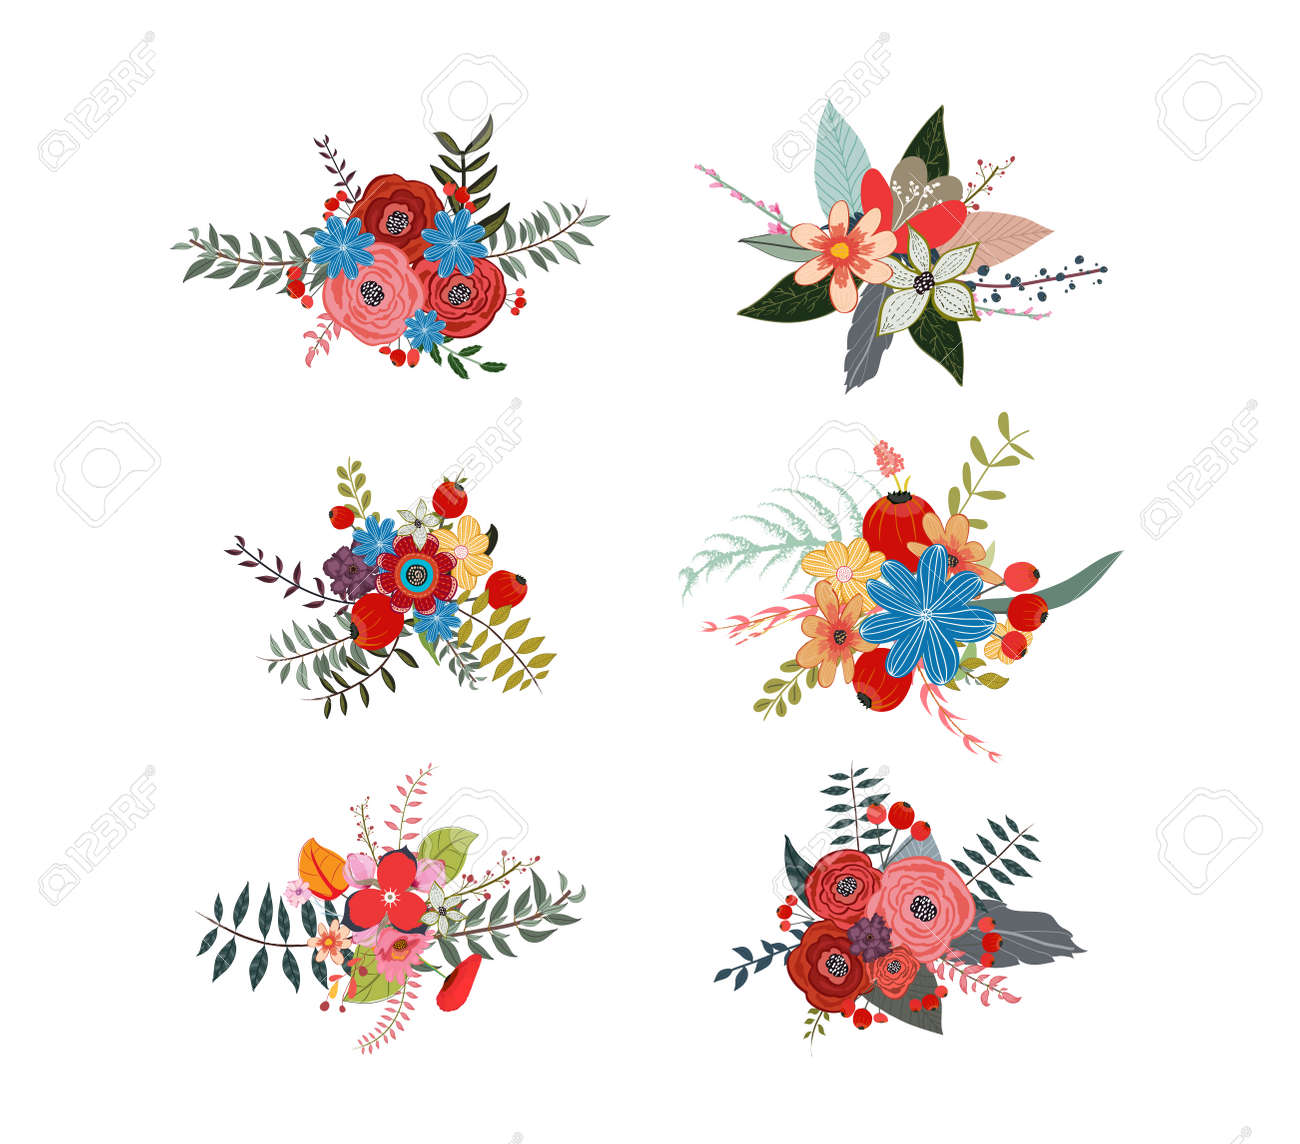 Spring floral clusters flower wreaths bouquets elements royalty spring floral clusters flower wreaths bouquets elements stock vector 57972406 mightylinksfo